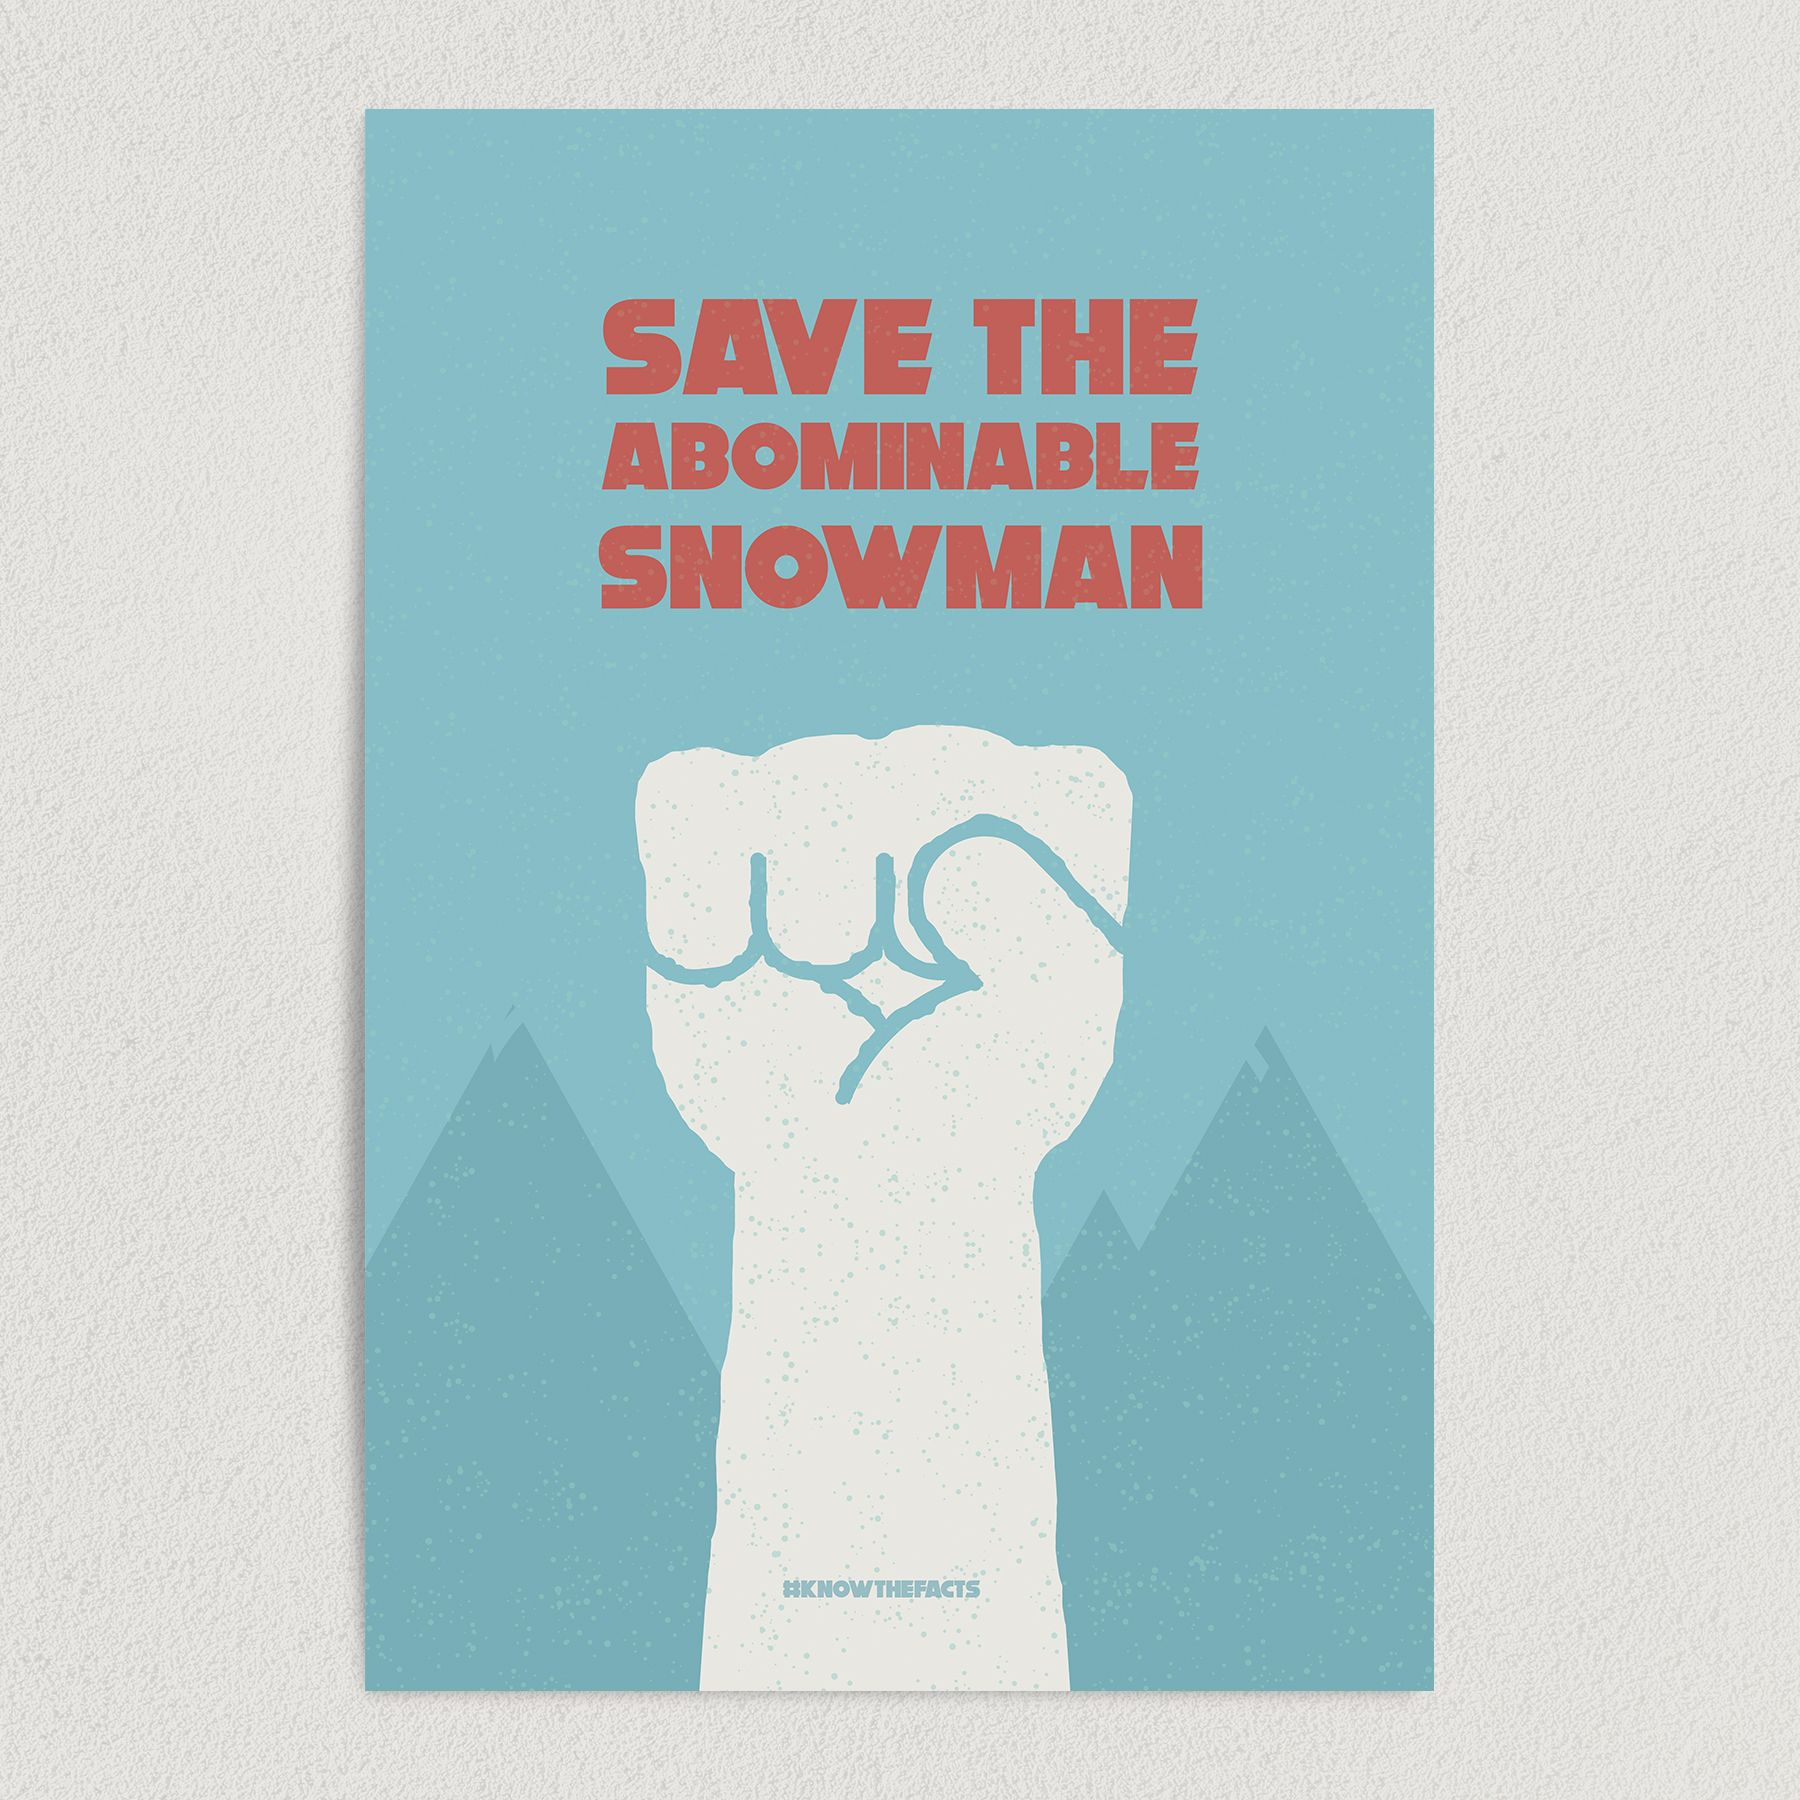 Save the Abominable Snowman #knowthefacts Art Print Poster 12″ x 18″ Wall Art PC1002